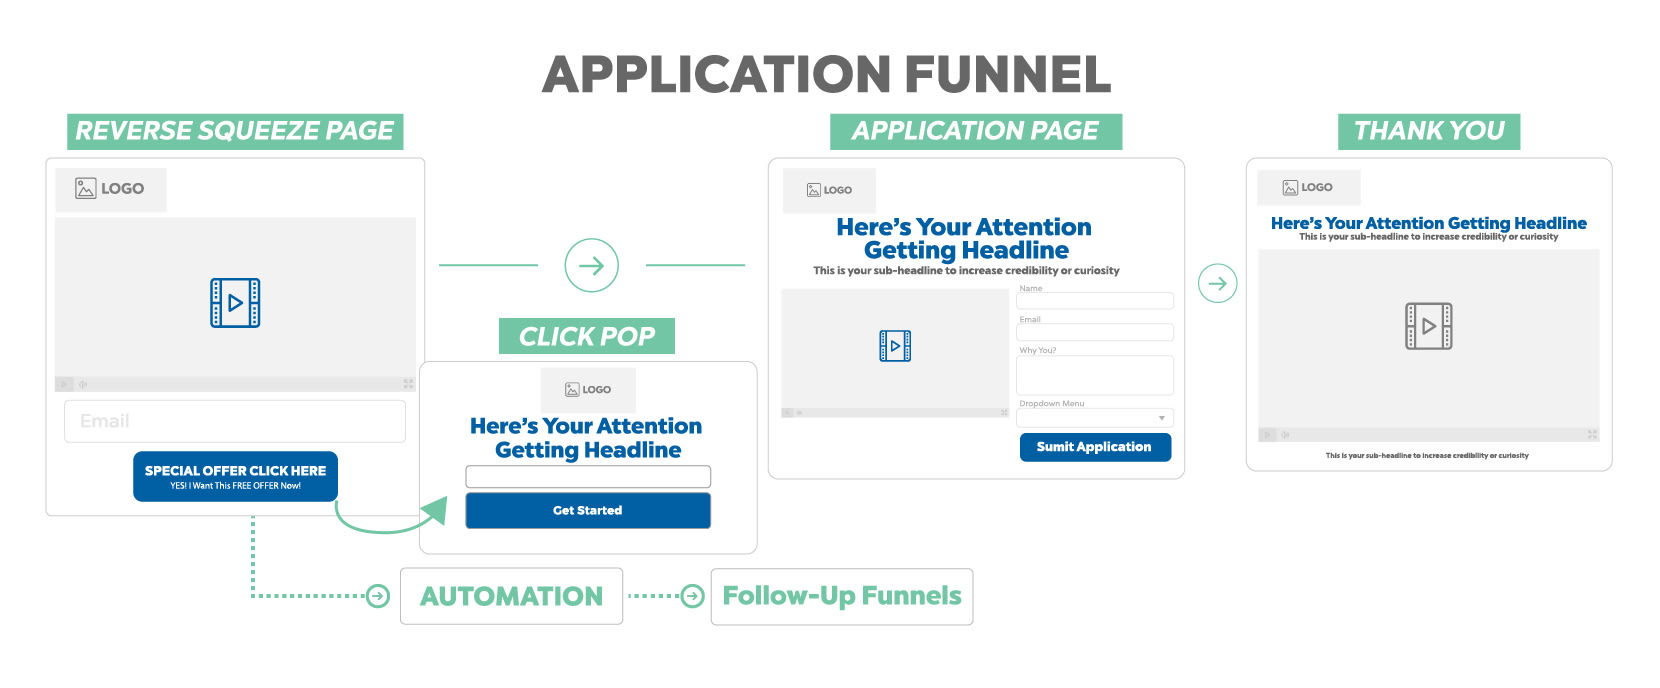 Build your application funnel by Chrispiloten